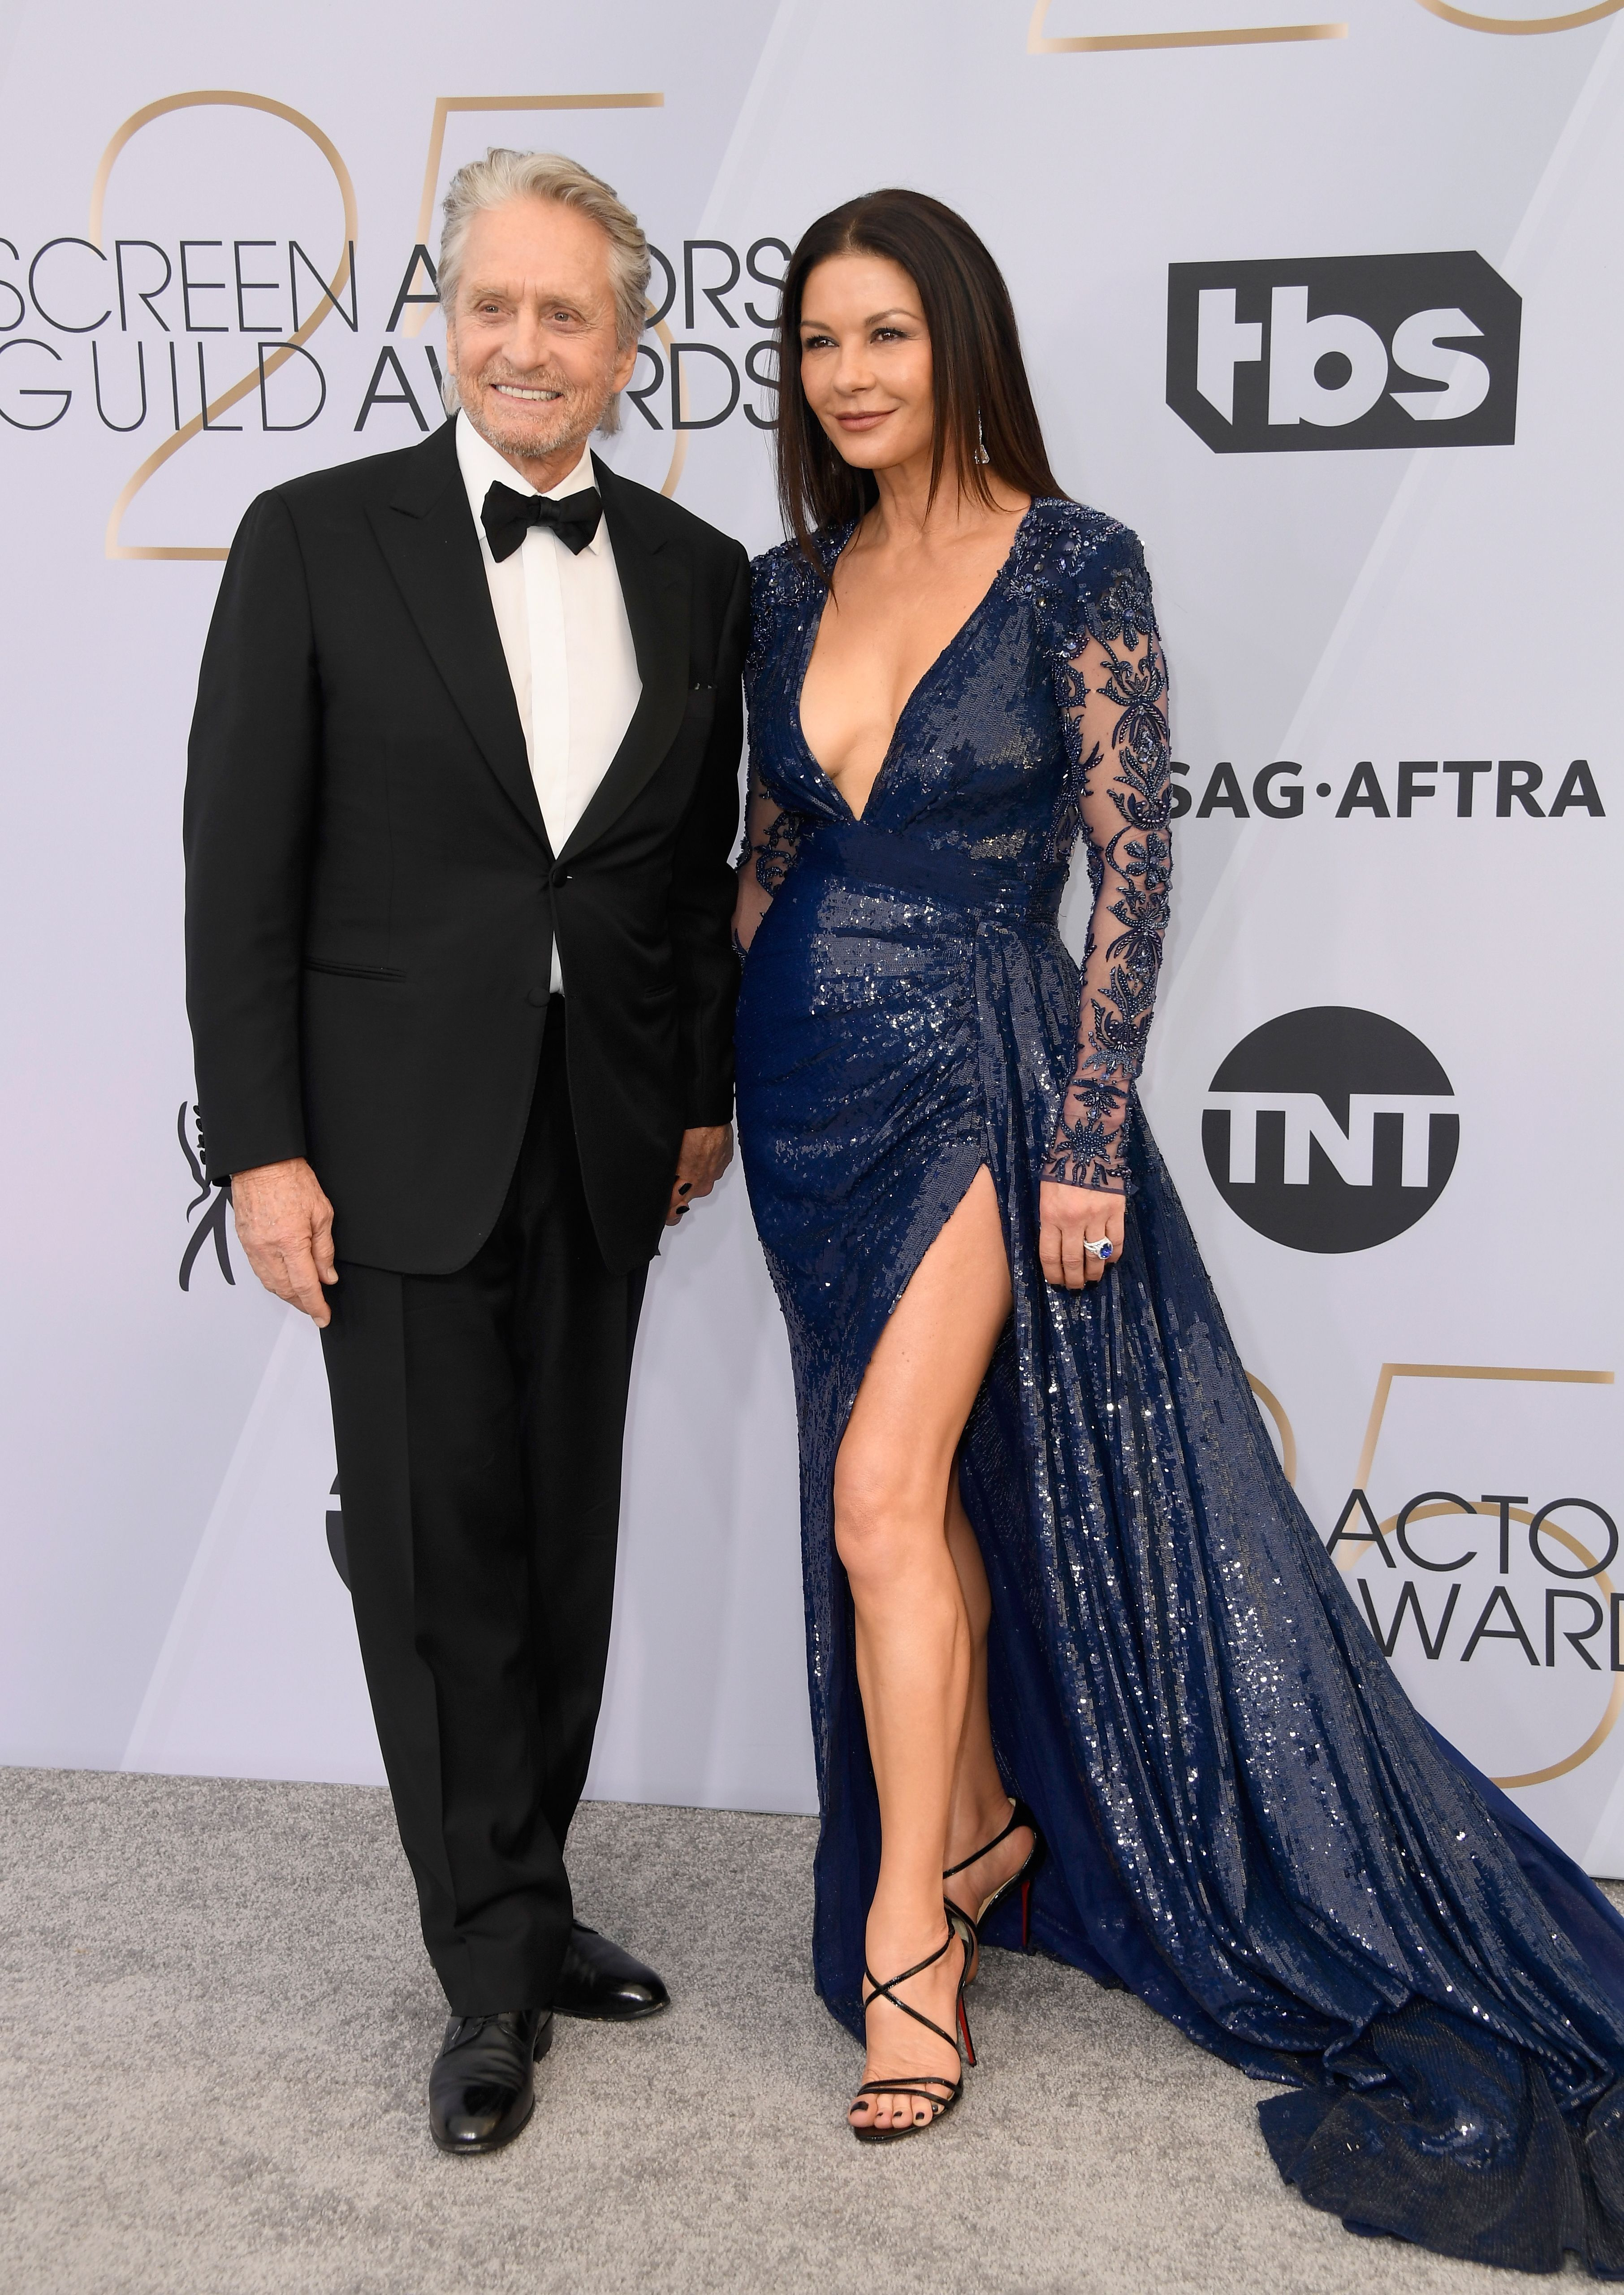 fba7622ecf6 Michael Douglas and Catherine Zeta-Jones are on the red carpet together in  early 2019 looking absolutely stunning as a couple.